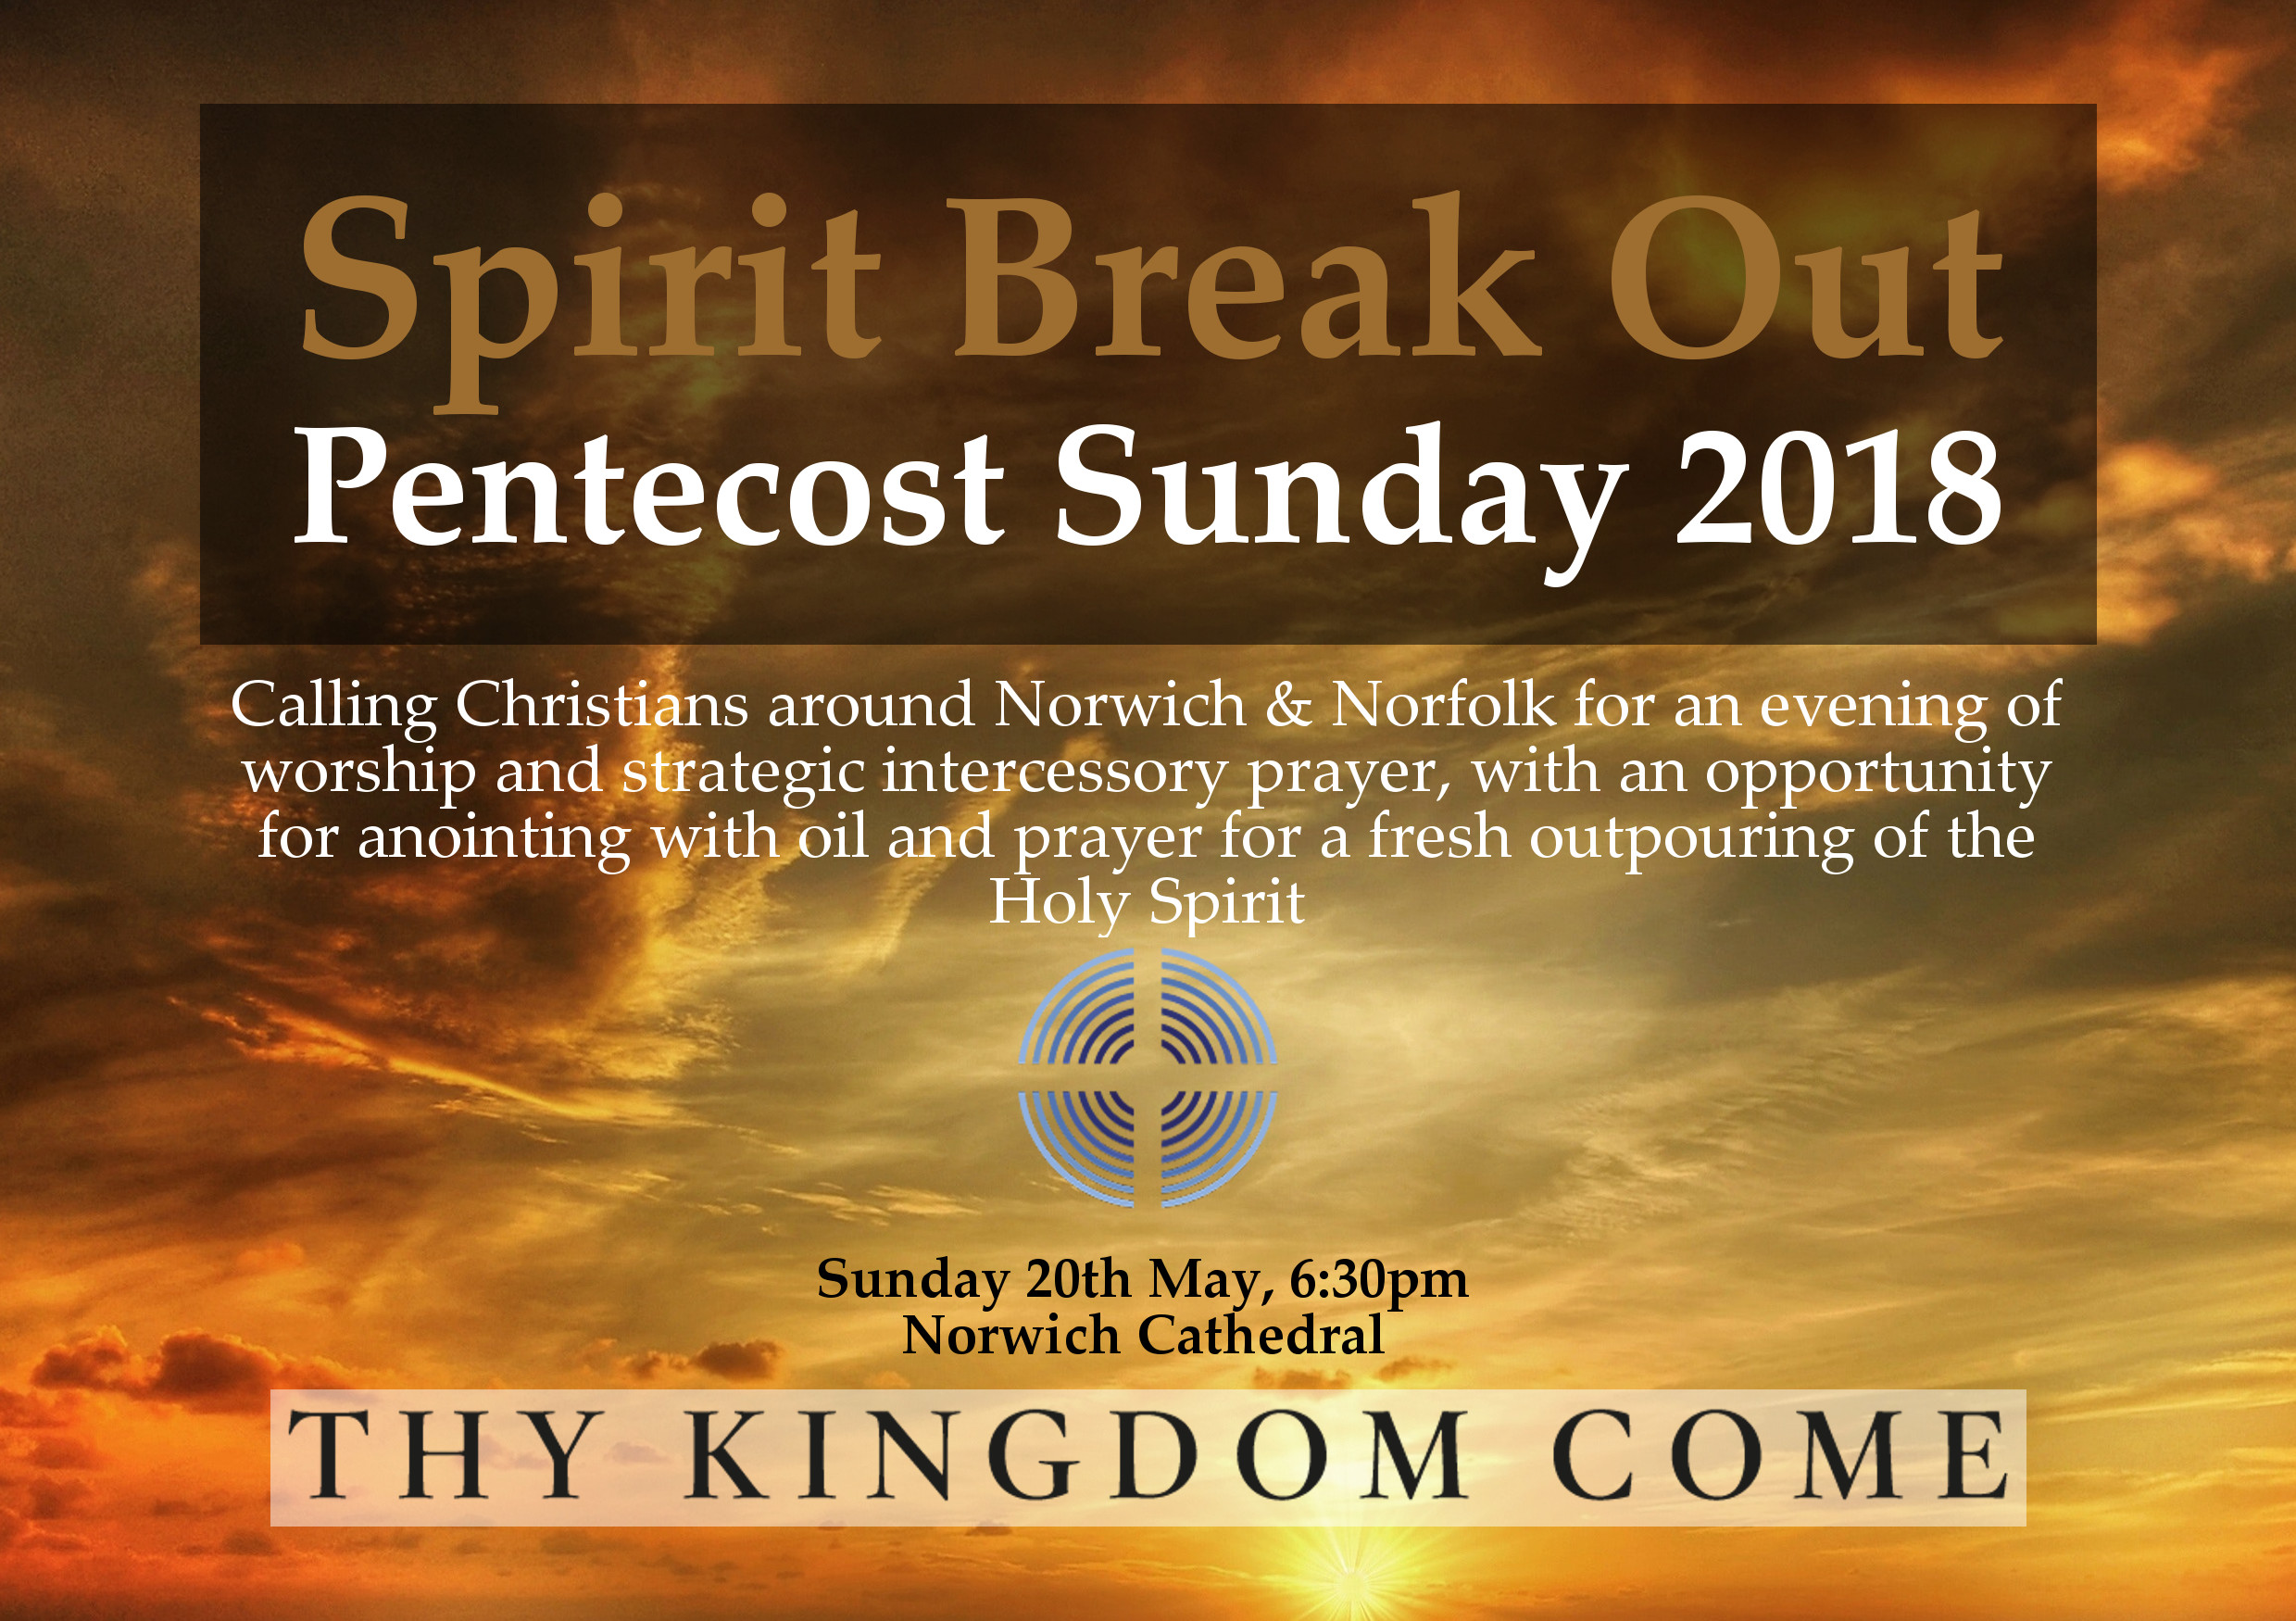 Thy Kingdom Come Pentecost 2018 Joint Event SBO.jpeg